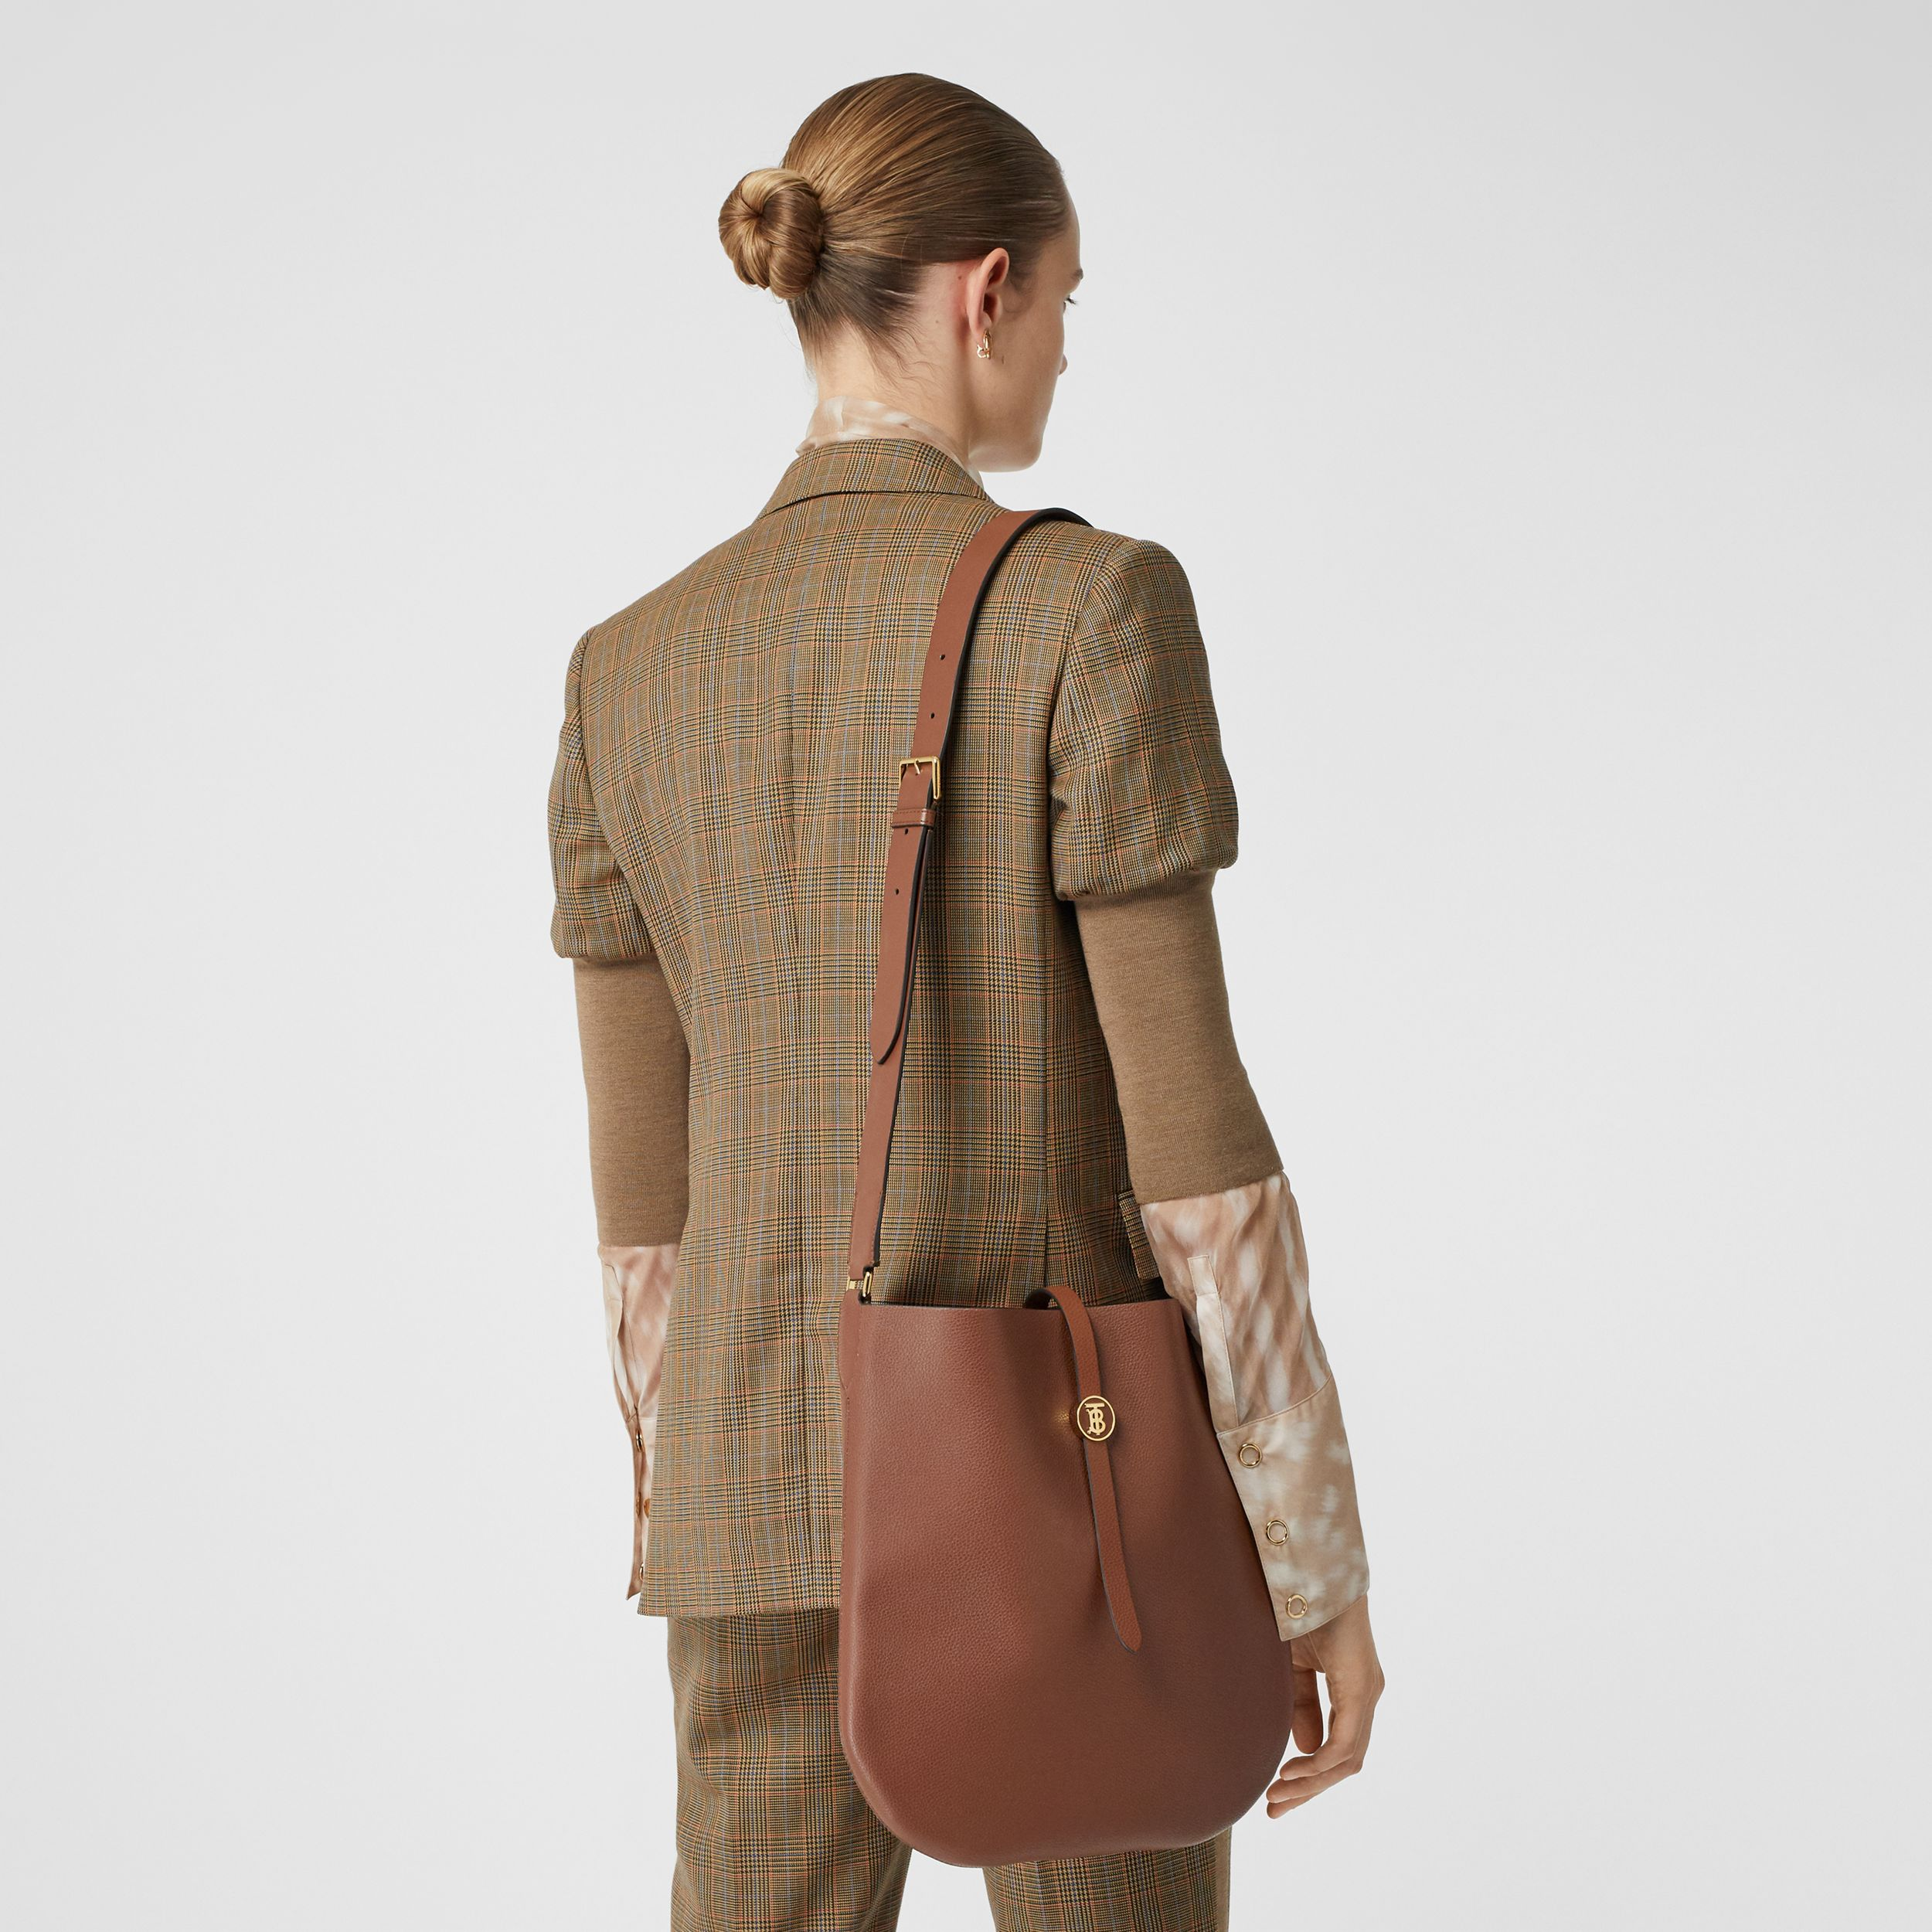 Grainy Leather Anne Bag in Tan - Women | Burberry Australia - 3